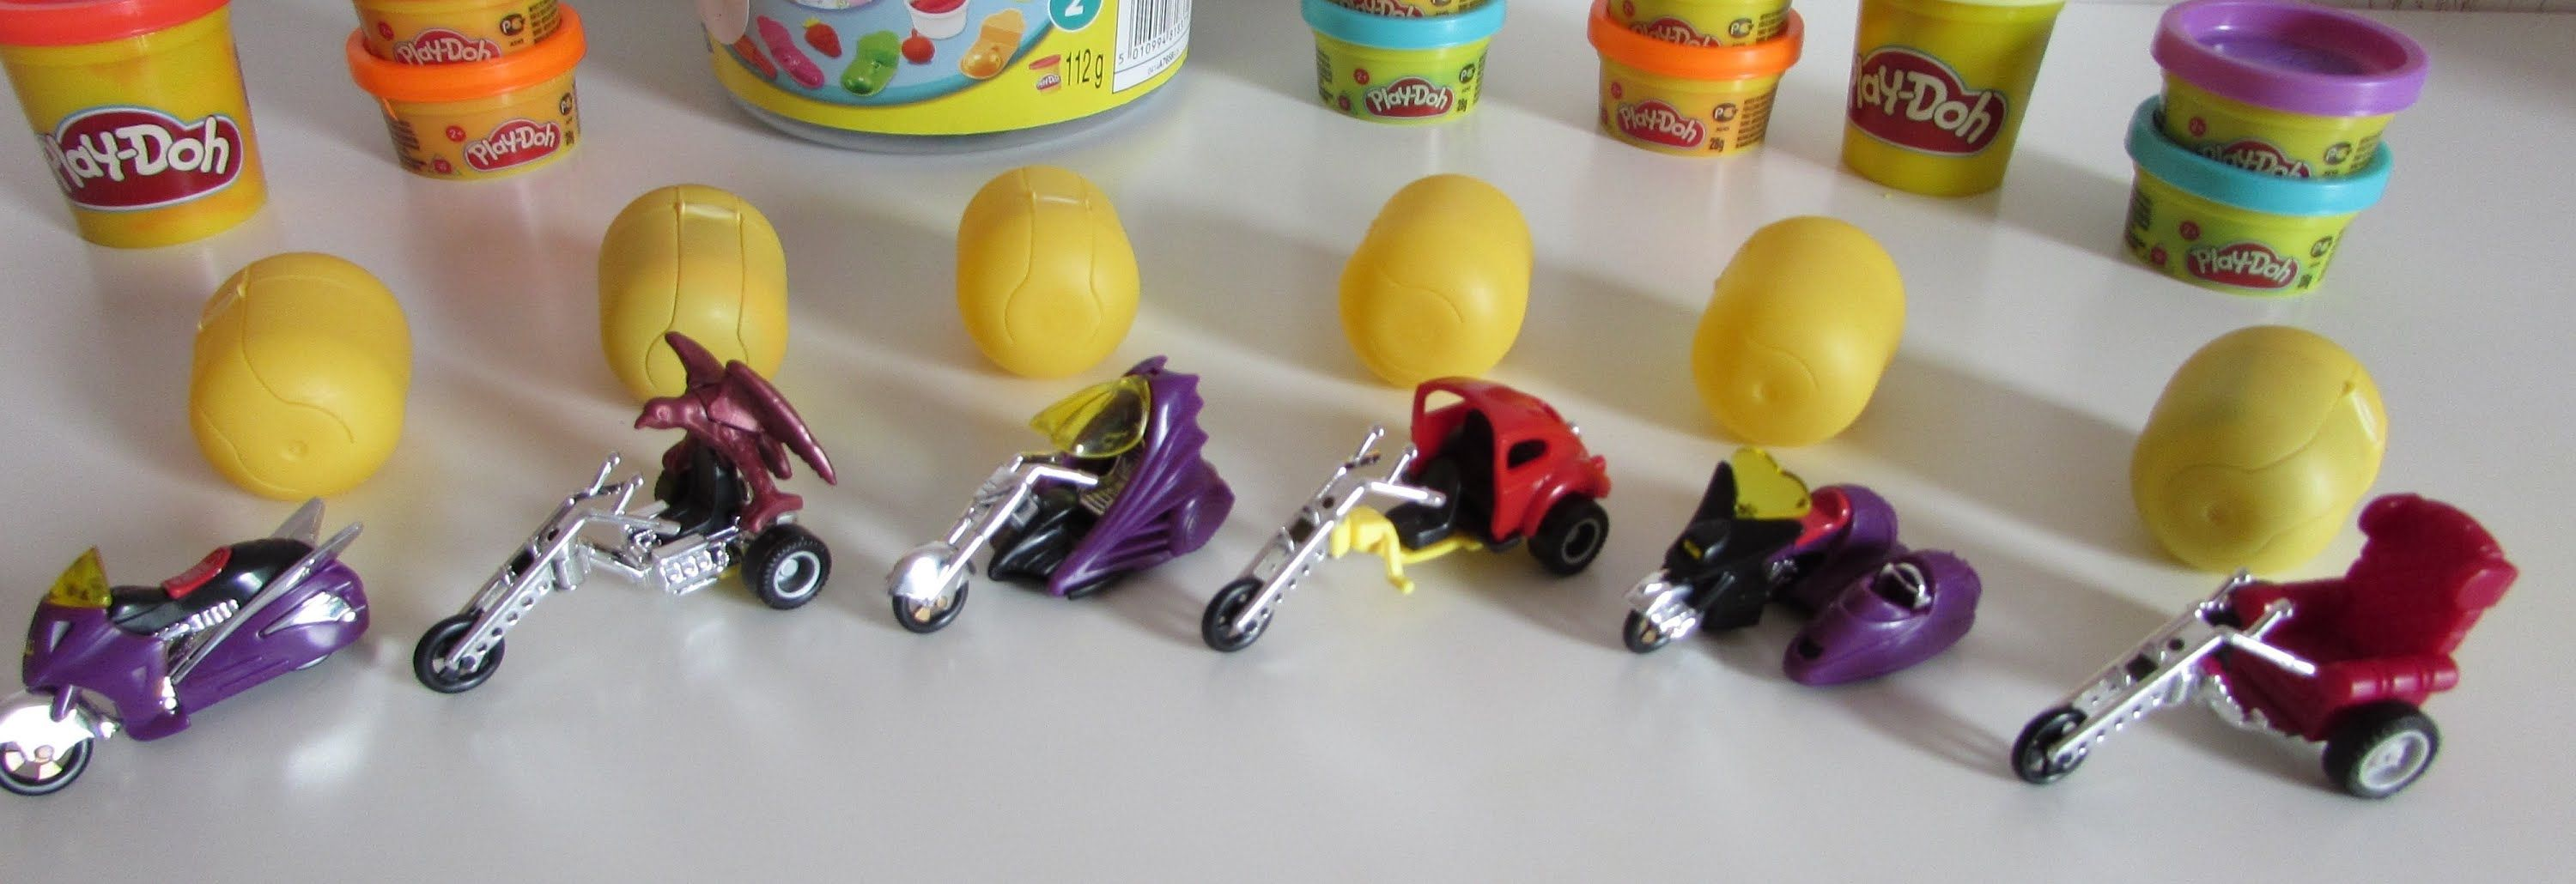 B toys cars  Motorcycle Kinder Surprise eggs covered with Play Doh dough Nice